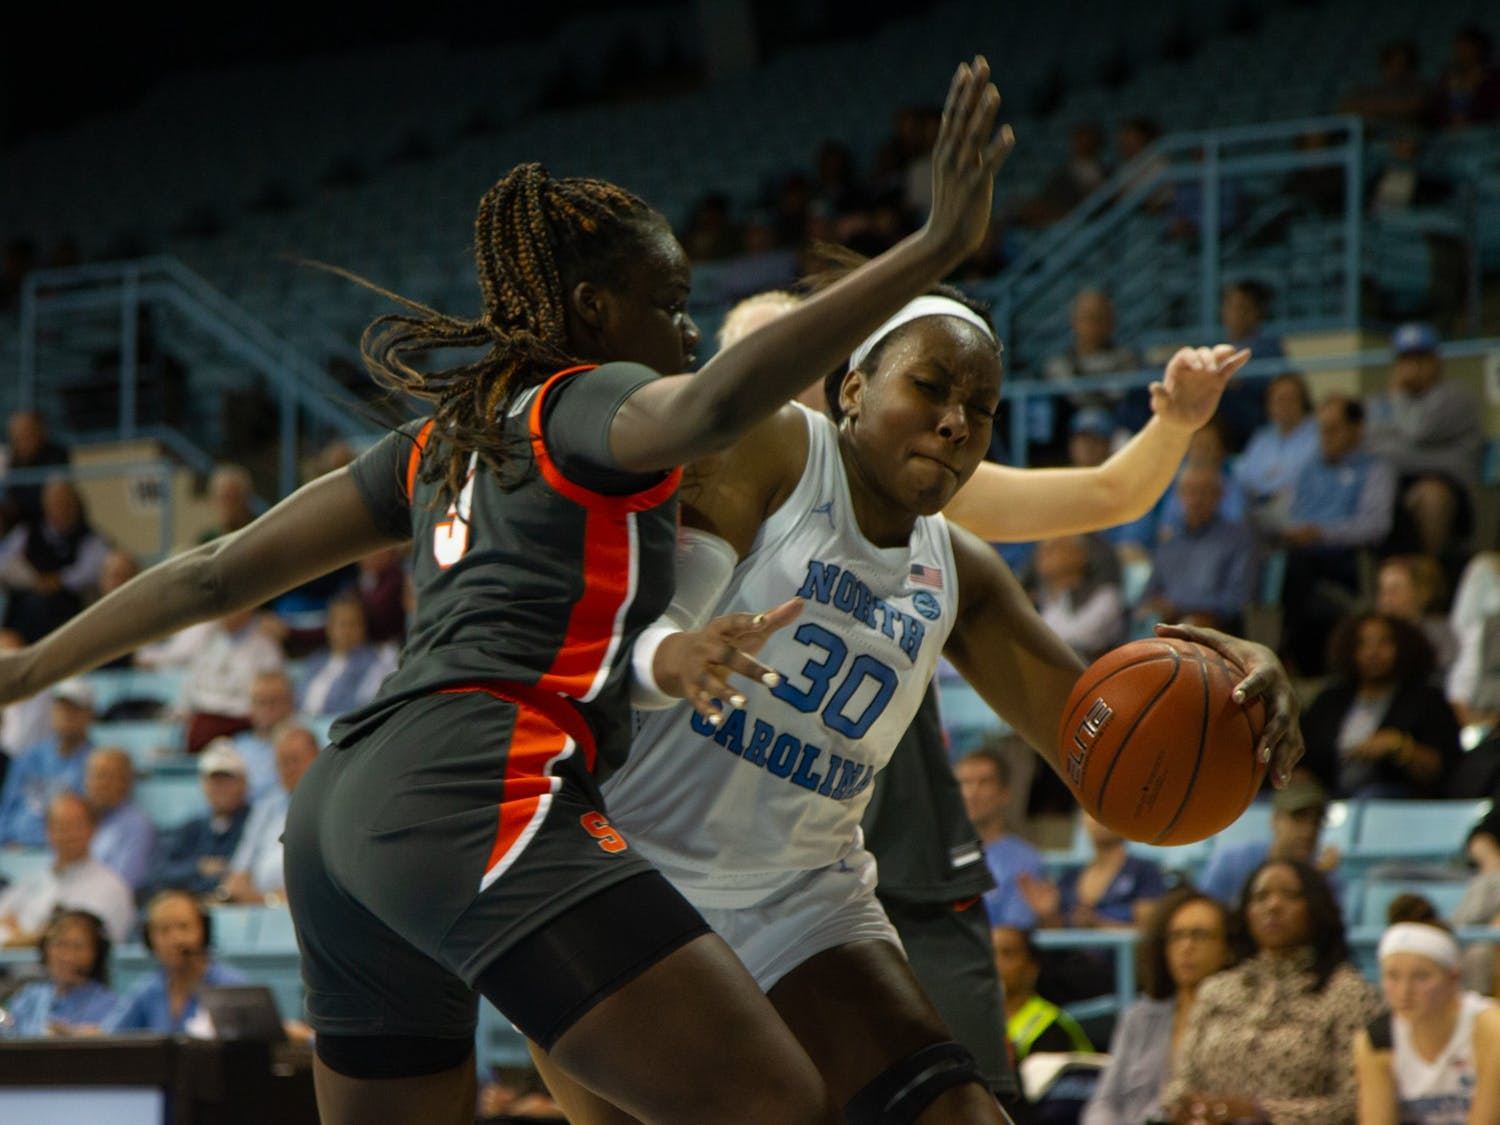 UNC junior center Janelle Bailley (30) goes in for a layup as Syracuse redshirt sophomore forward Maeva Djaldi-Tabdi (3) defends during a game in Carmichael Arena on Thurday, Feb. 13, 2020. Syracuse beat the Tarheels 74-56.